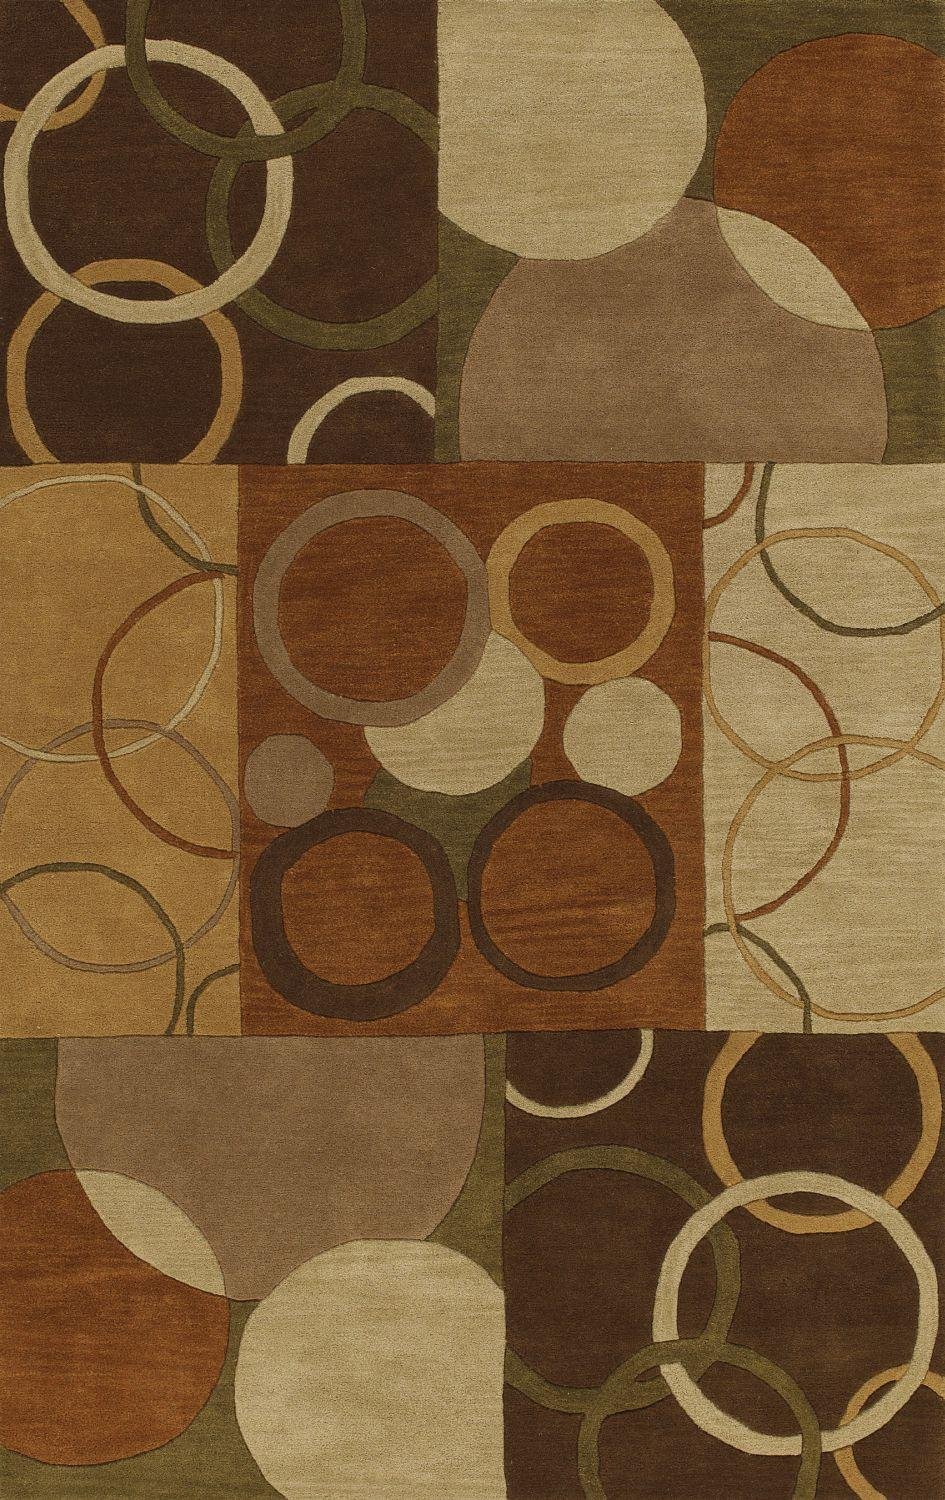 Super Area Rugs 5x7-5x8 Rug NEW Modern Area Rugs Contemporary Carpet SALE Wool Hand Tufted 5ft. X 7ft. 6in. Multi at Sears.com